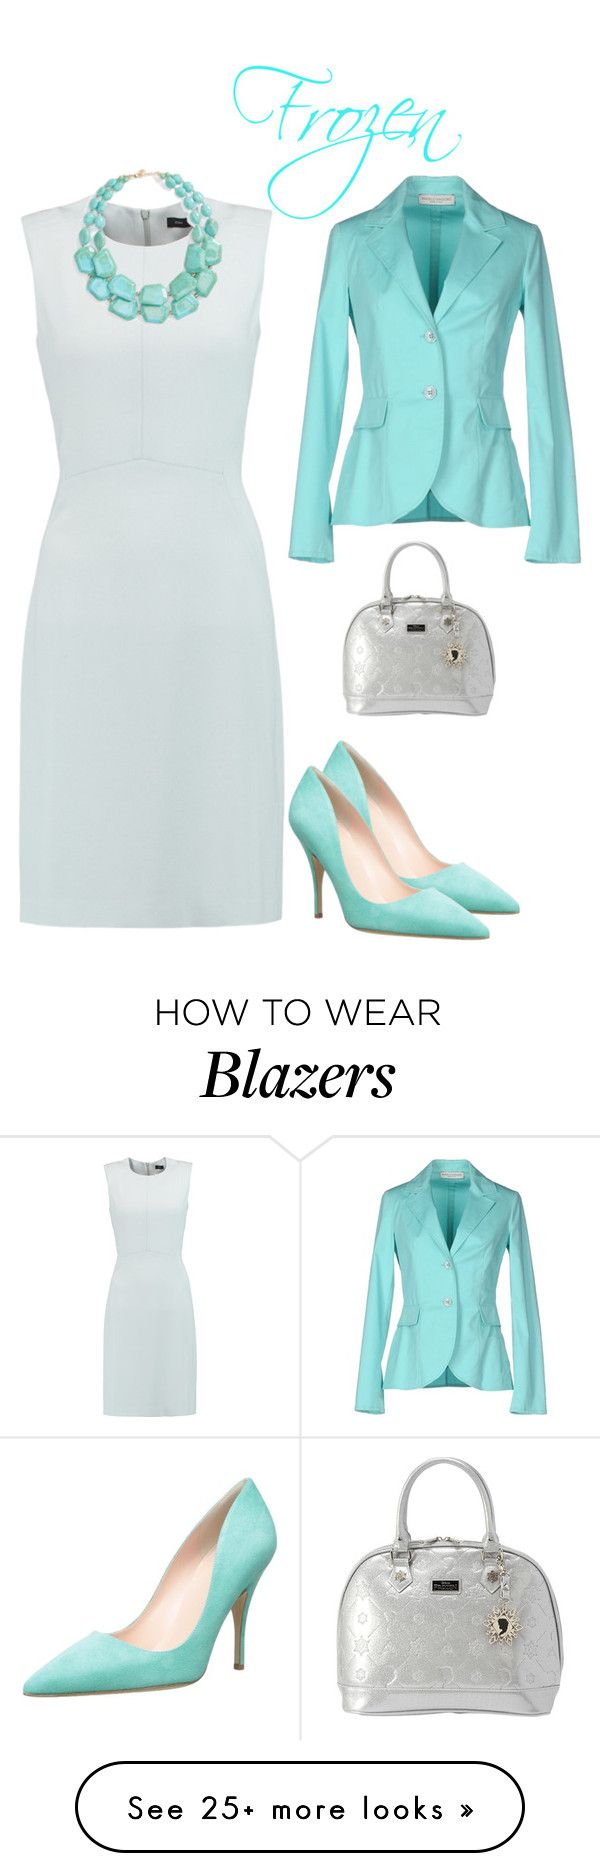 """""""frozen"""" by paula-parker on Polyvore featuring Joseph, Natasha Couture, Marcello Sangiorgi, Loungefly and Kate Spade"""